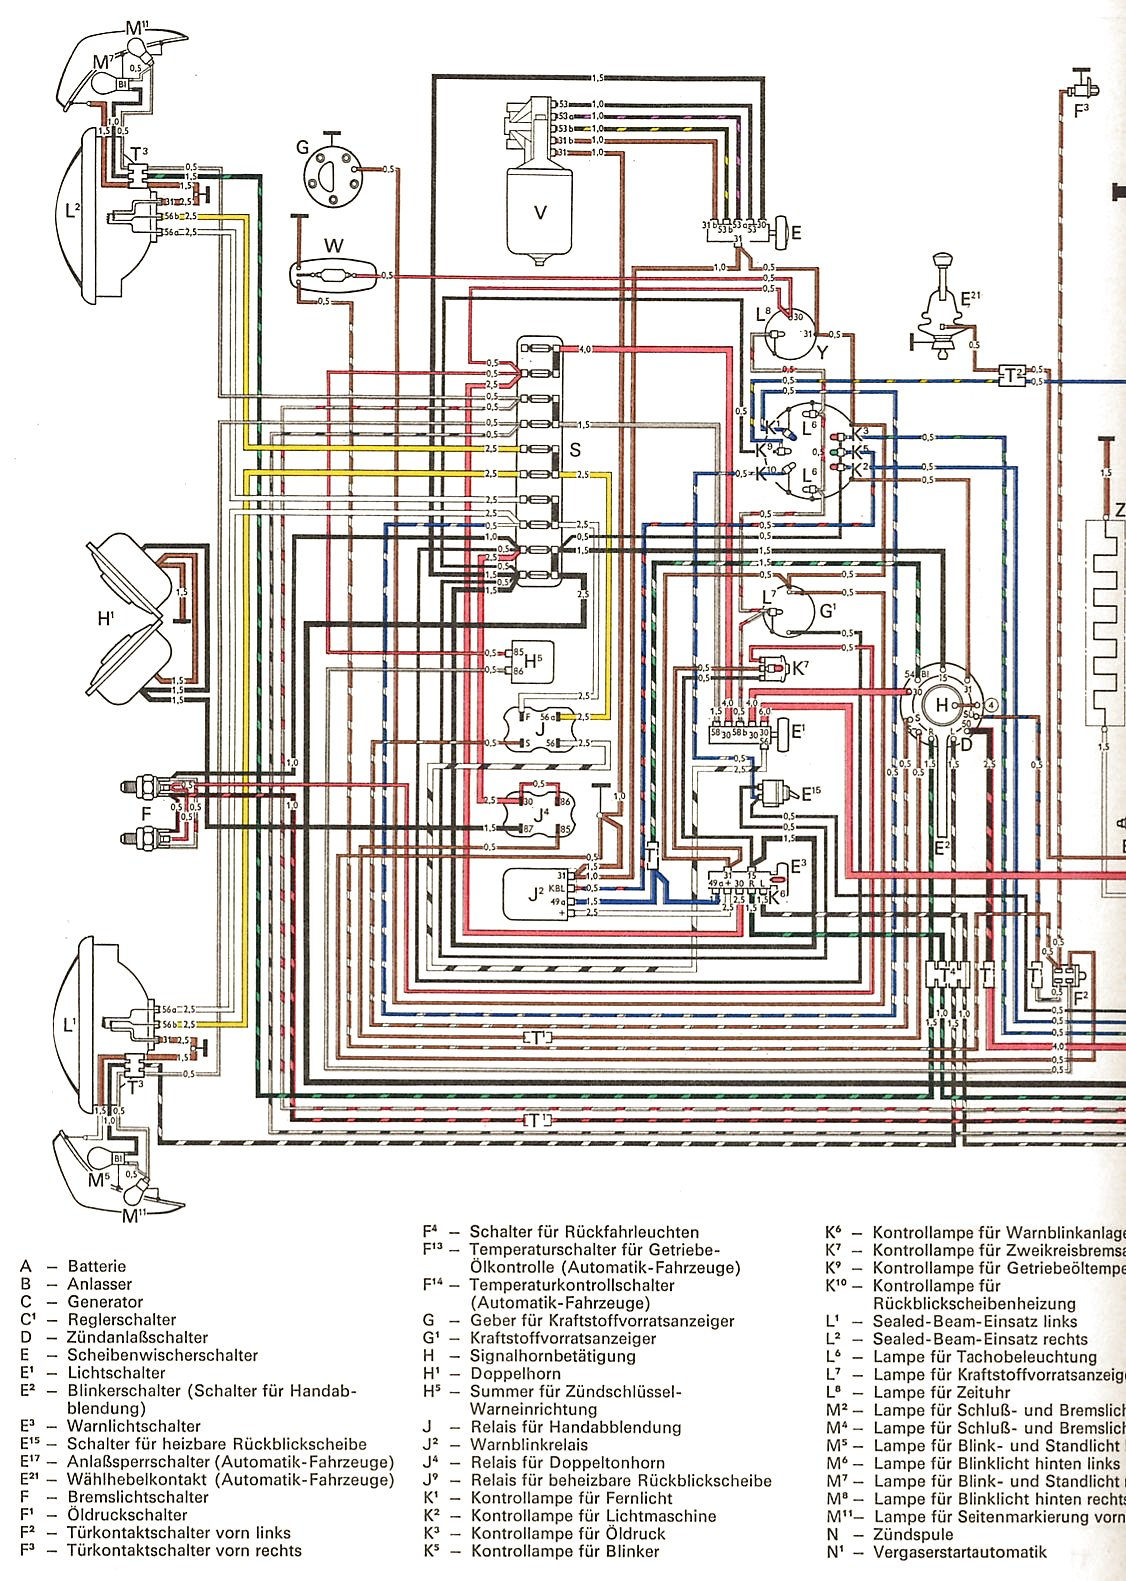 Karmann_Ghia_USA_from_August_1969 1 thesamba com ghia view topic colored wiring diagram fiat x19 wiring diagram at eliteediting.co